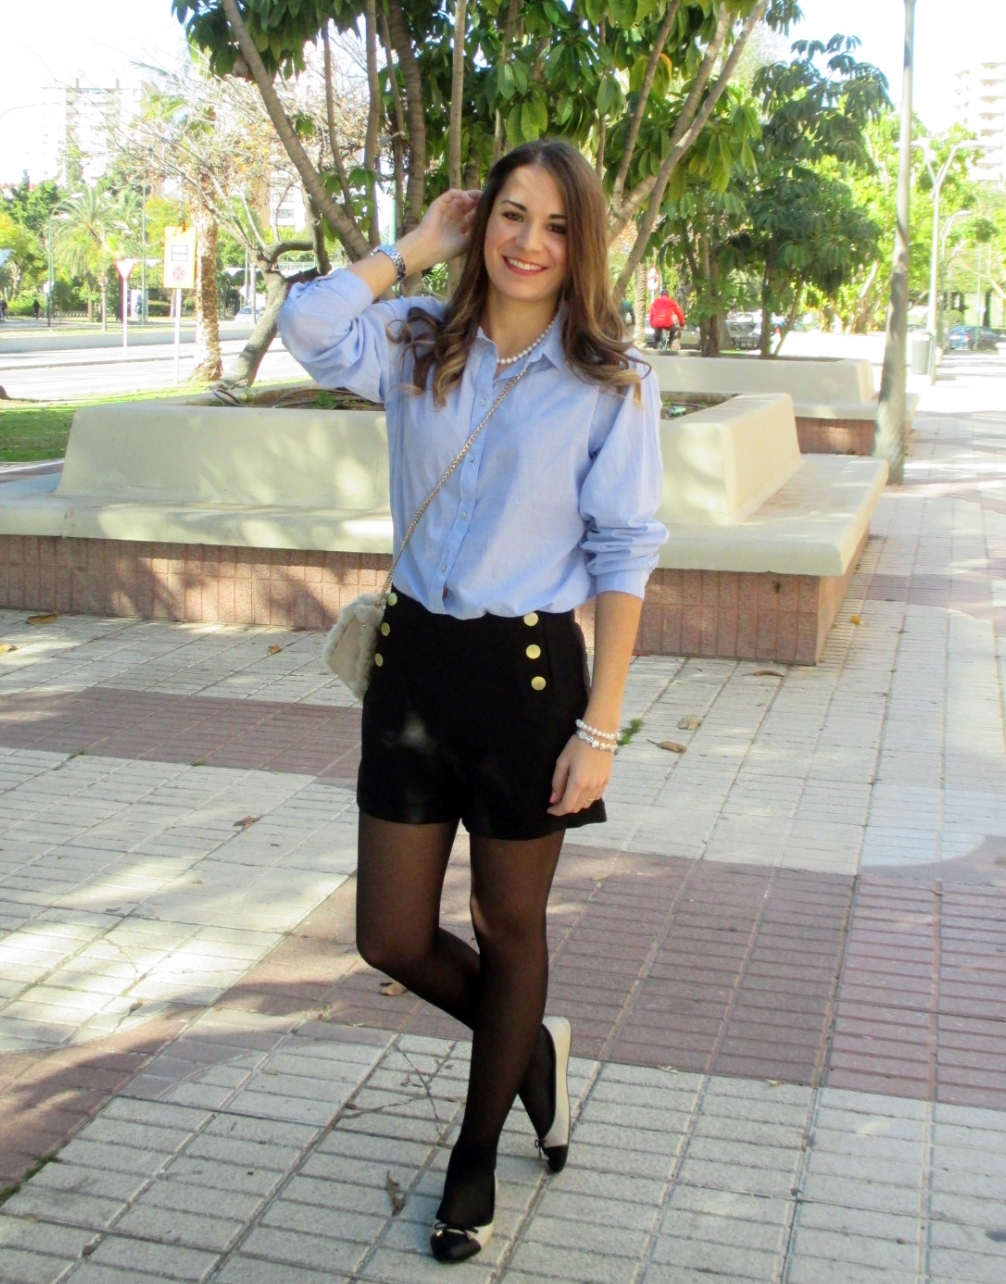 Blue&Black outfit